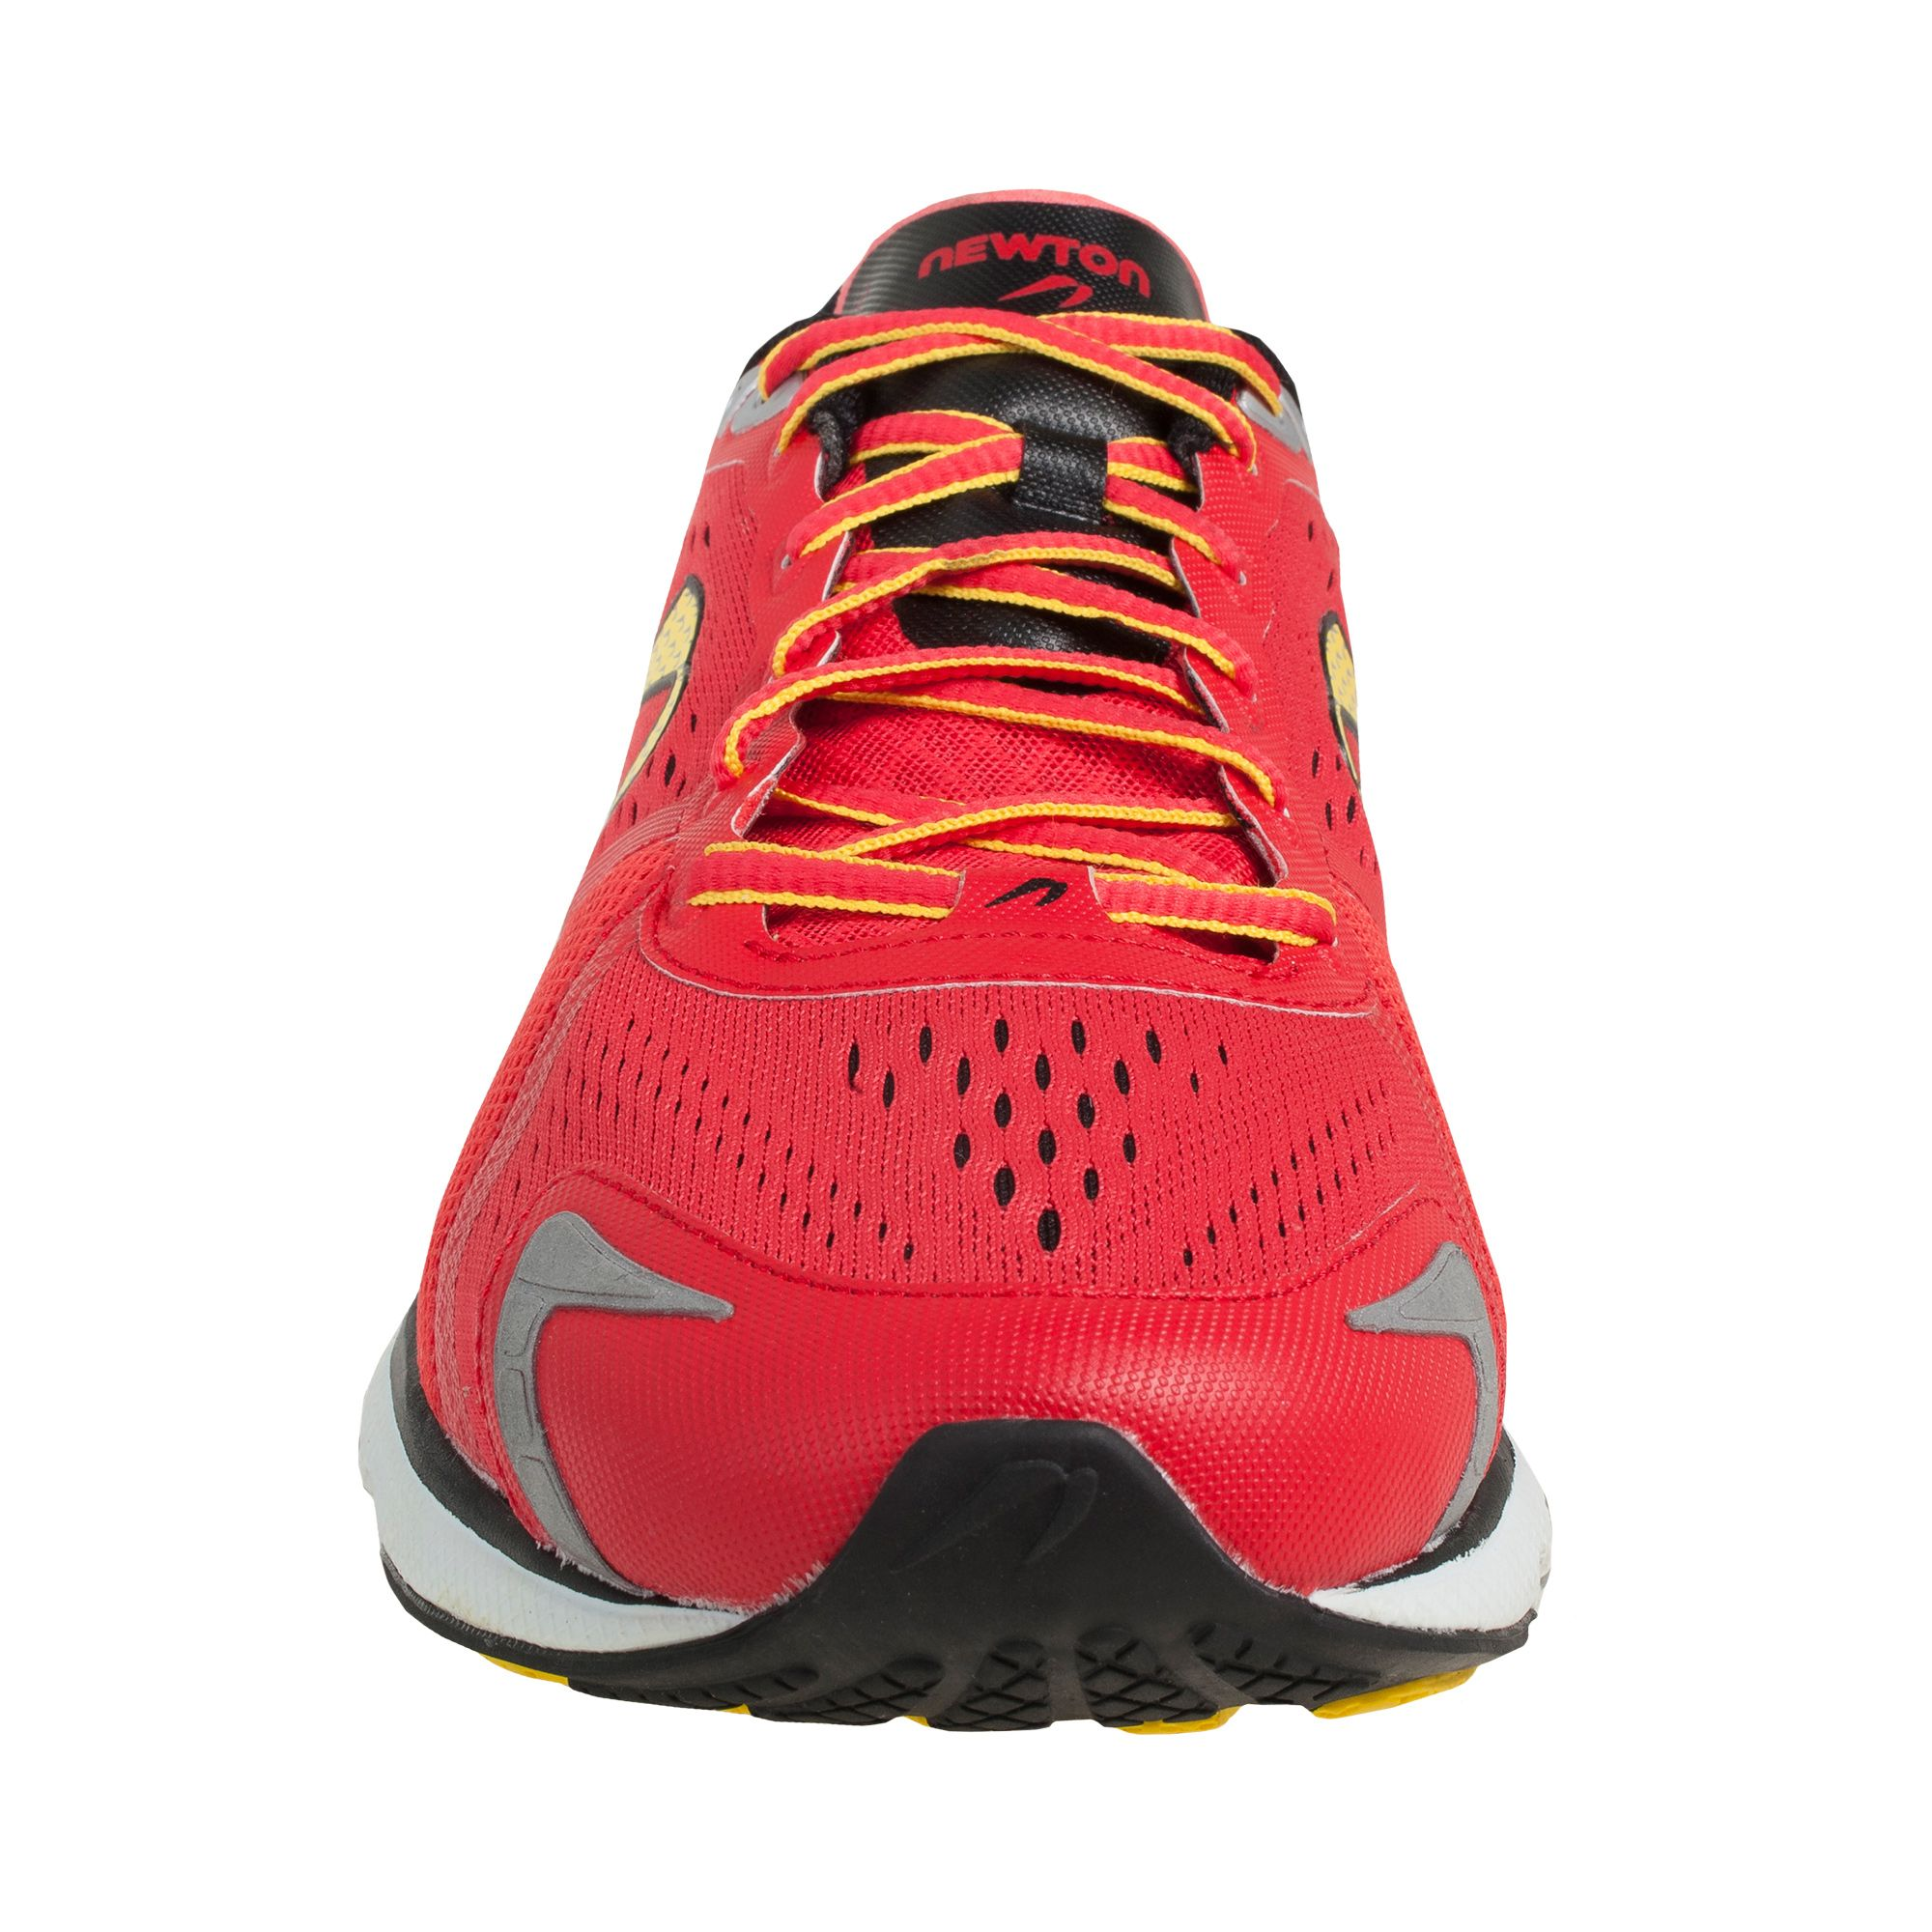 Top Performing Running Shoes